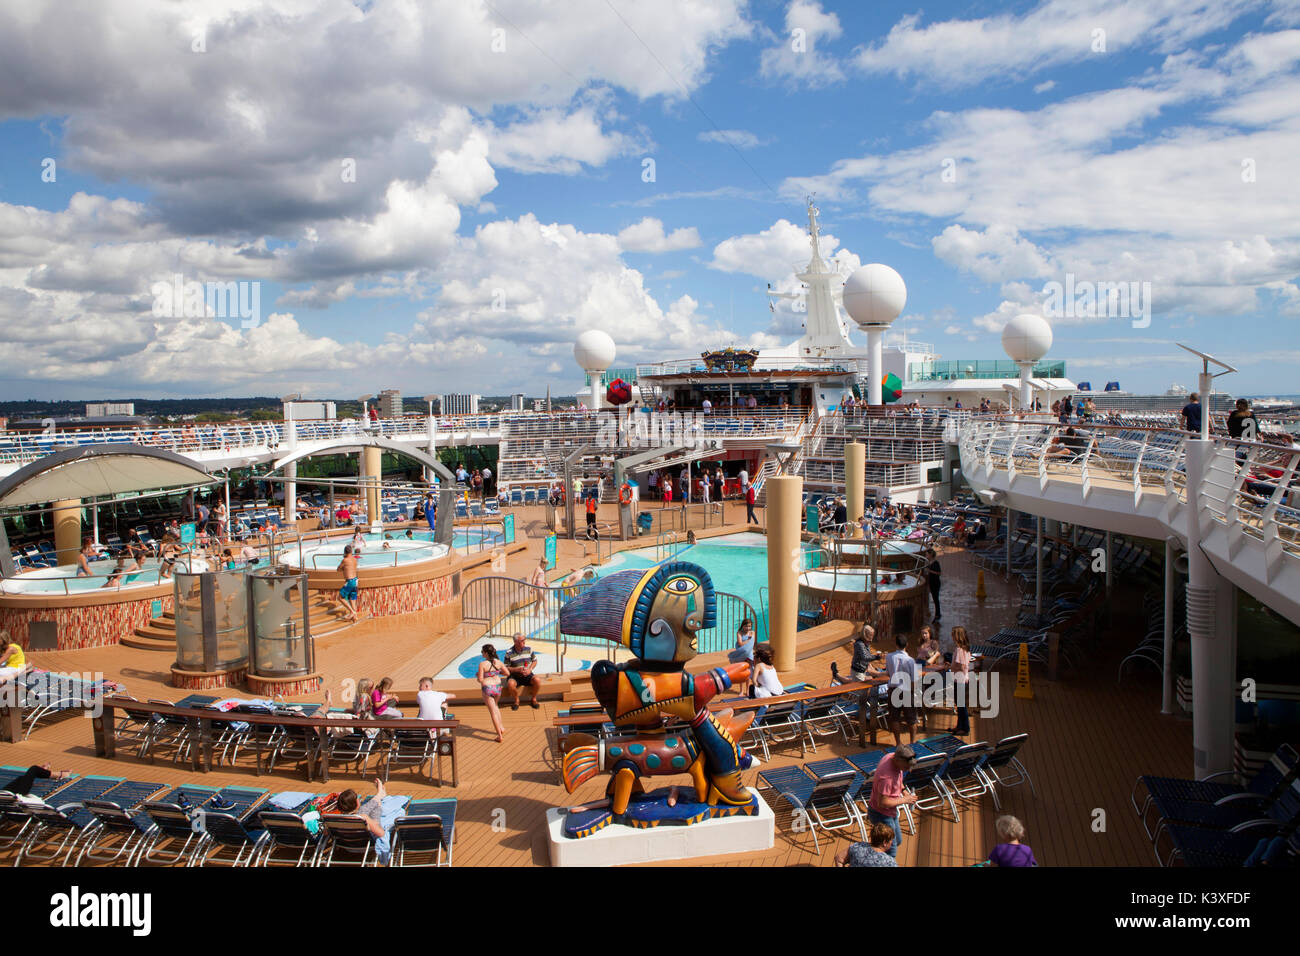 Pool deck 11 of Royal Caribbean Navigator of the Seas cruise ship - Stock Image